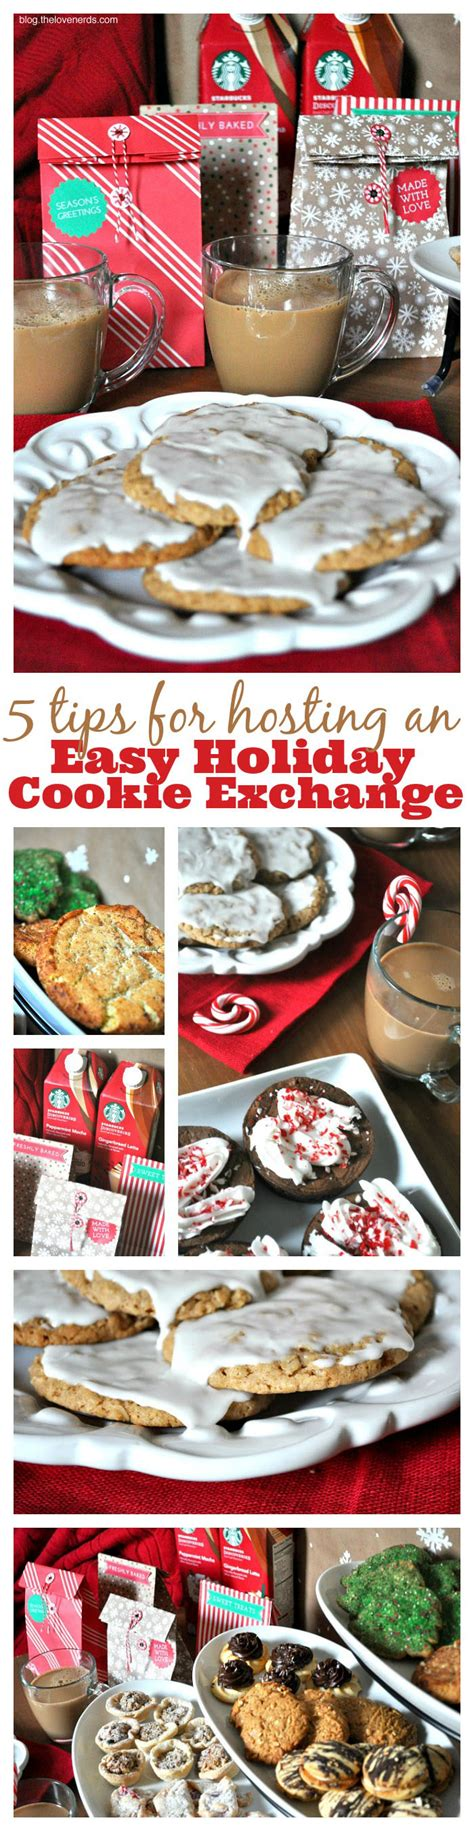 5 Tips For Hosting A Holiday Cookie Exchange Party  The Love Nerds